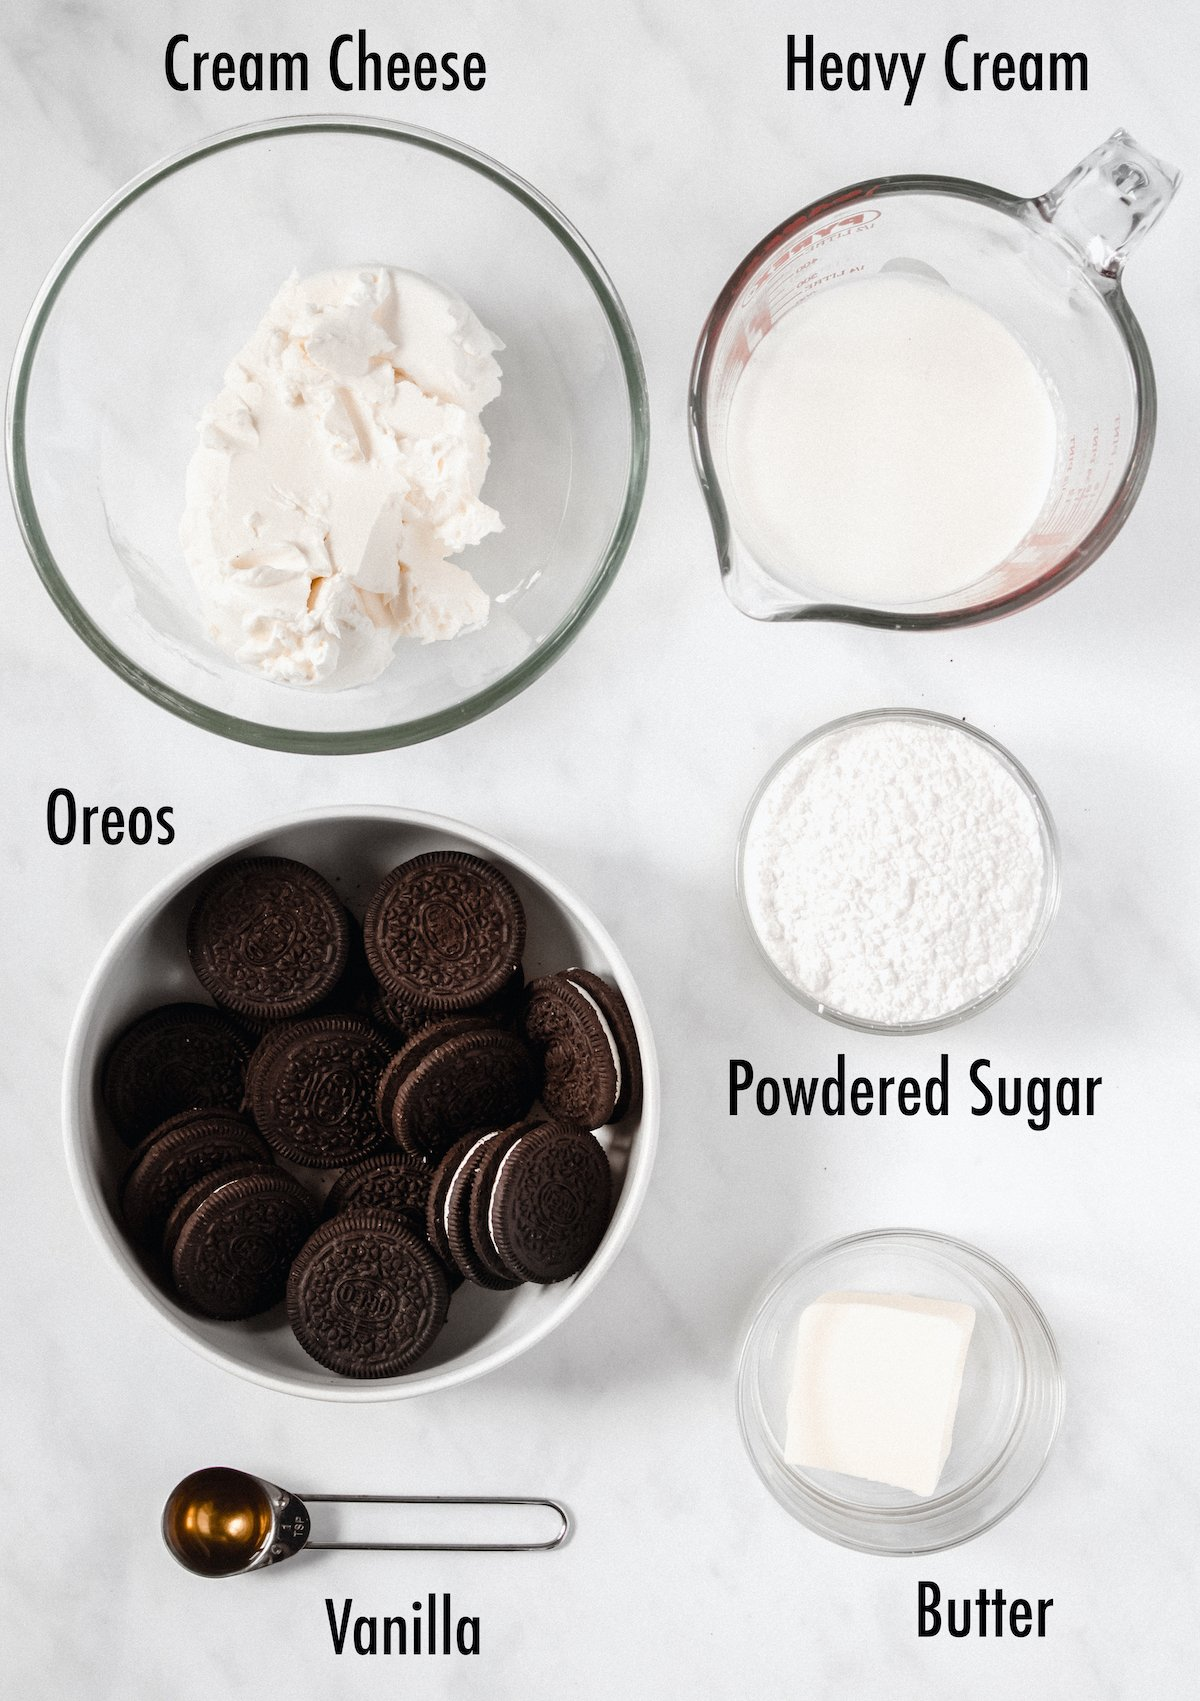 Overhead view of the ingredients needed for cookies and cream pie: cream cheese, heavy cream, oreos, powdered sugar, vanilla, and butter